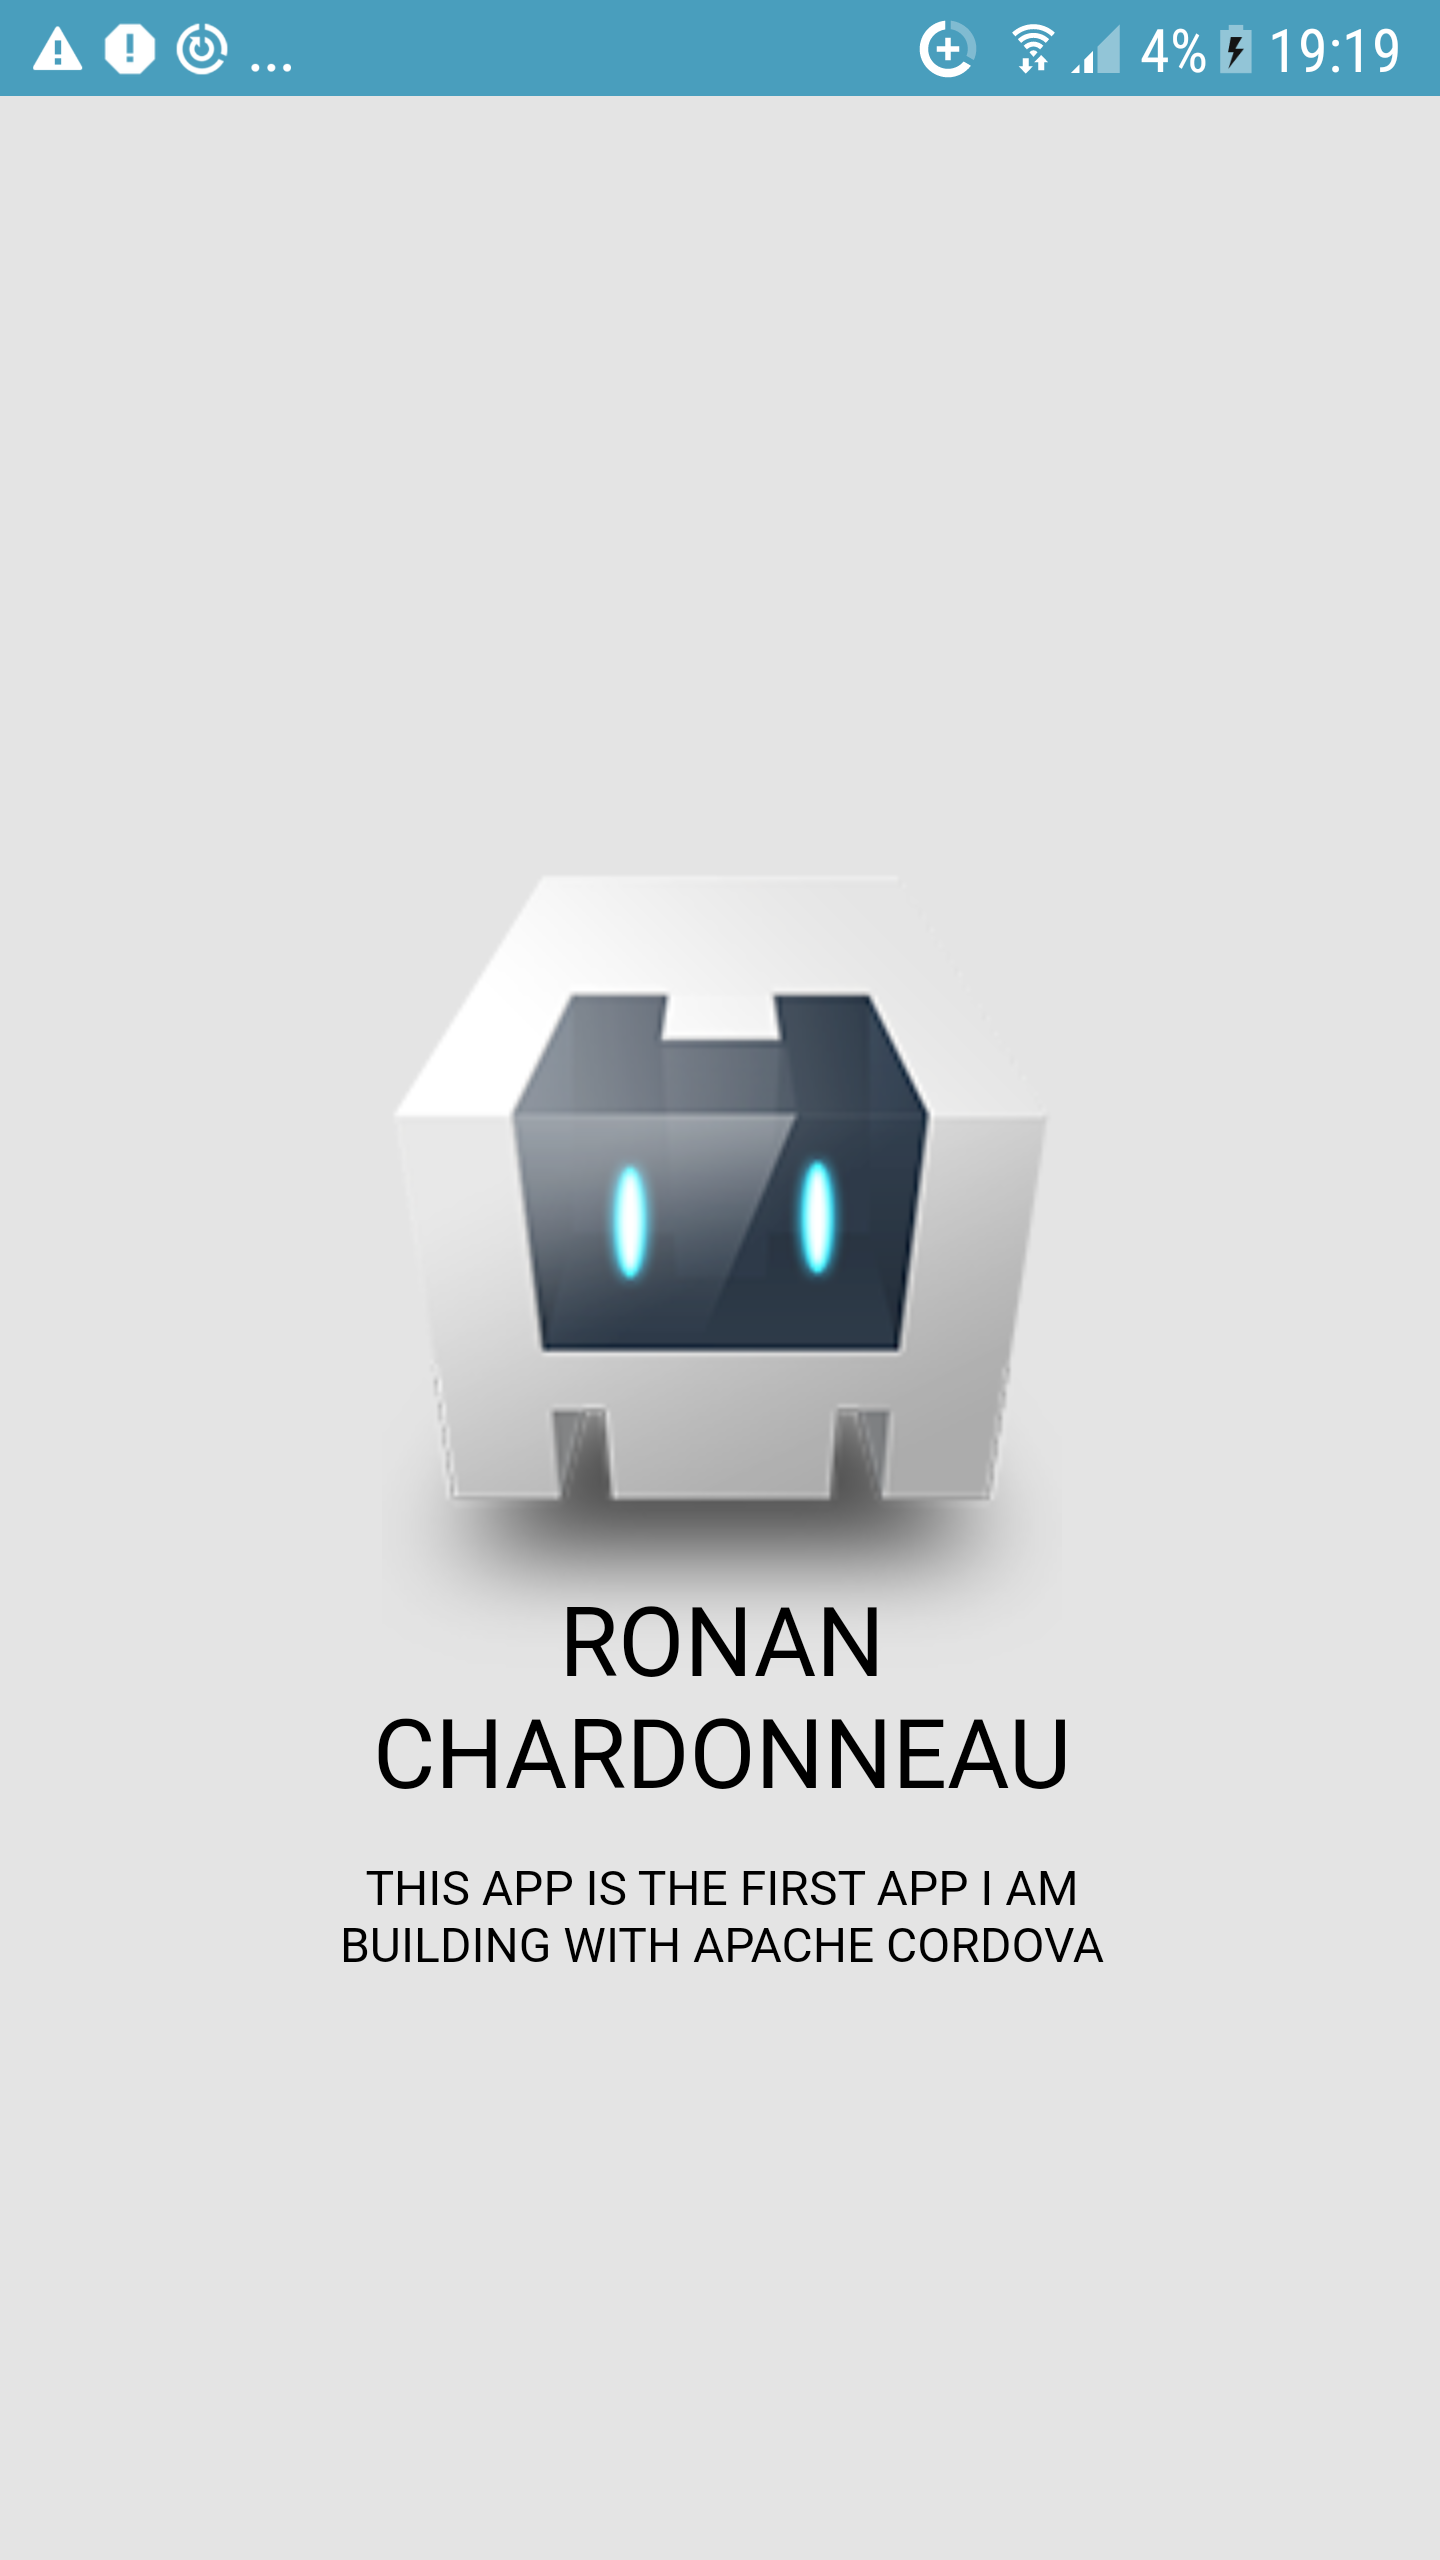 My first app built on Apache Cordova